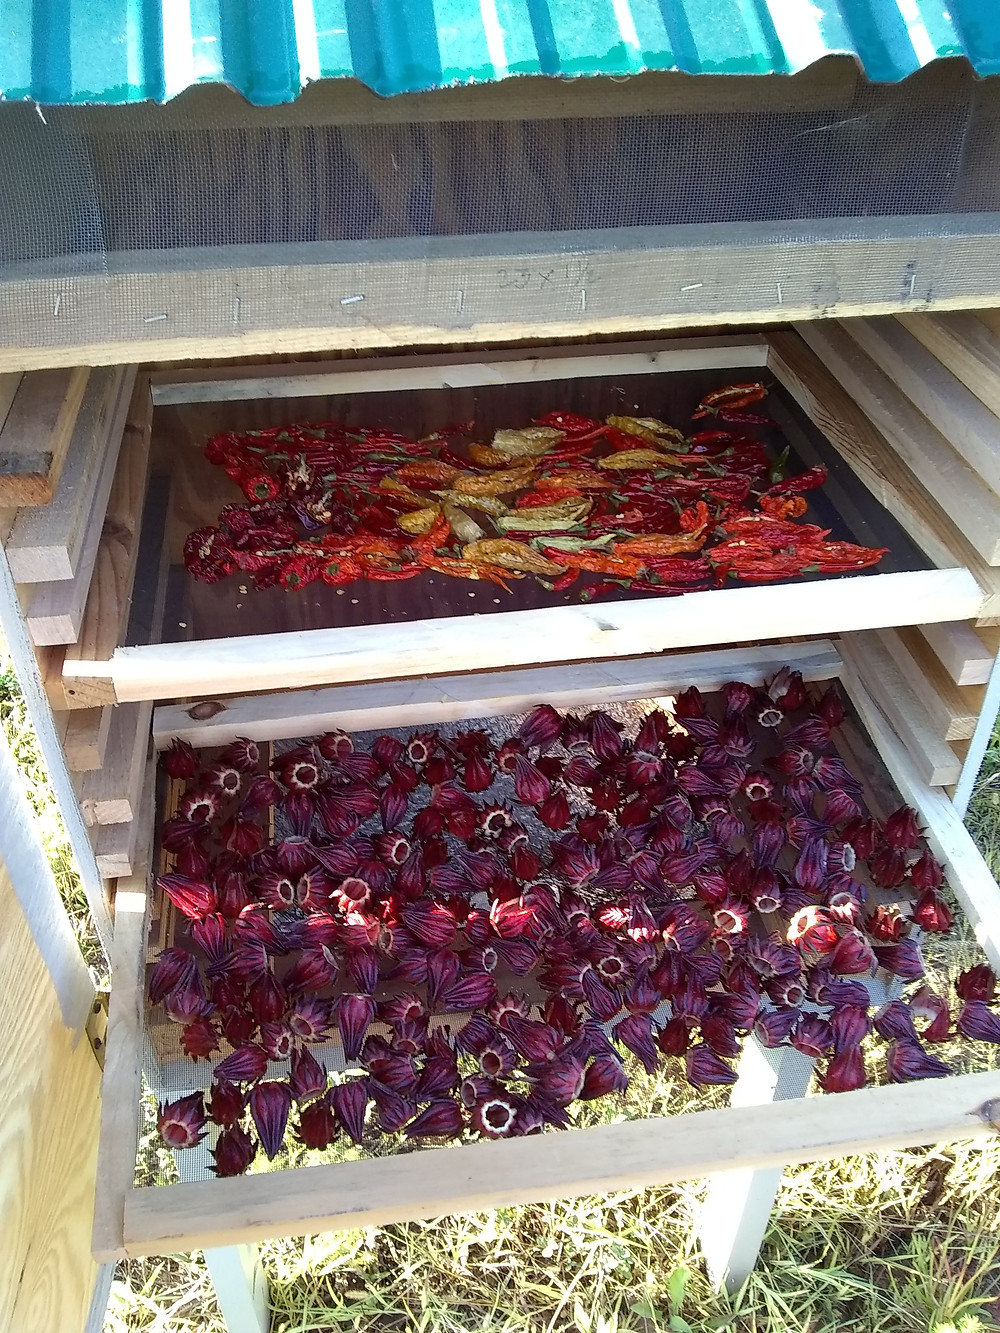 Inside a home-made solar dehydrator